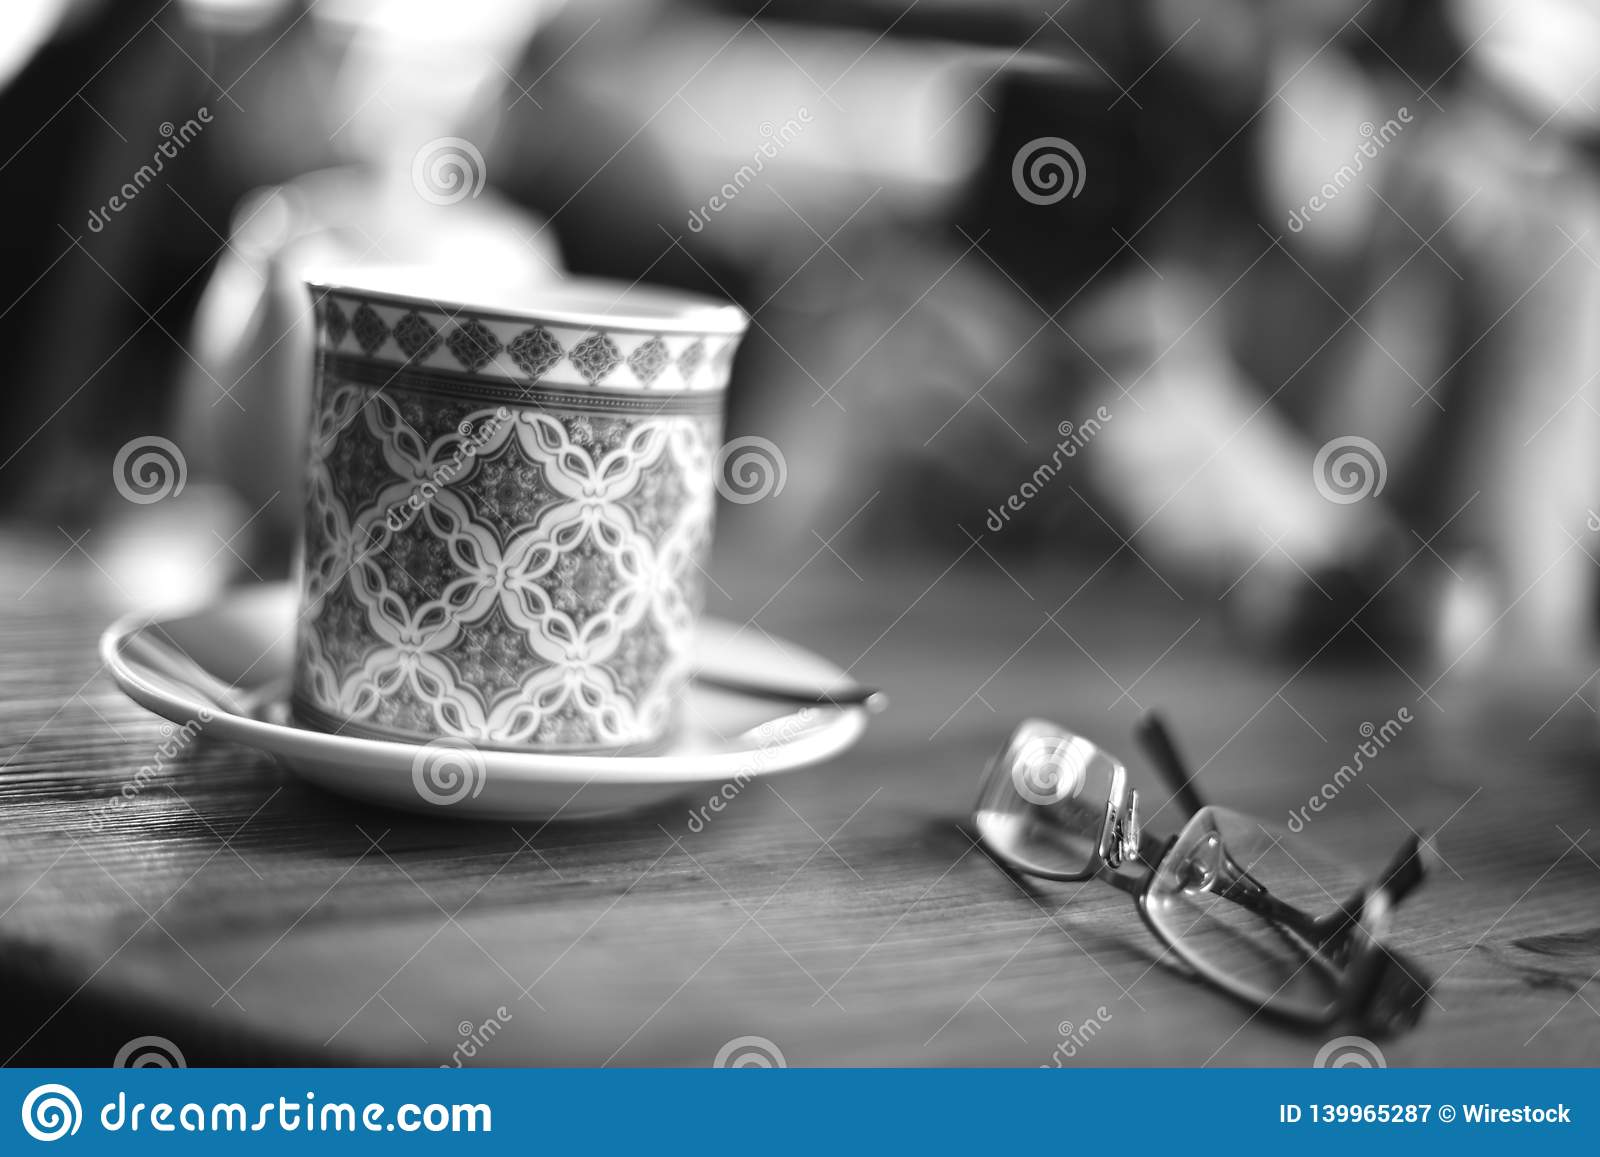 Coffee cup and glasses